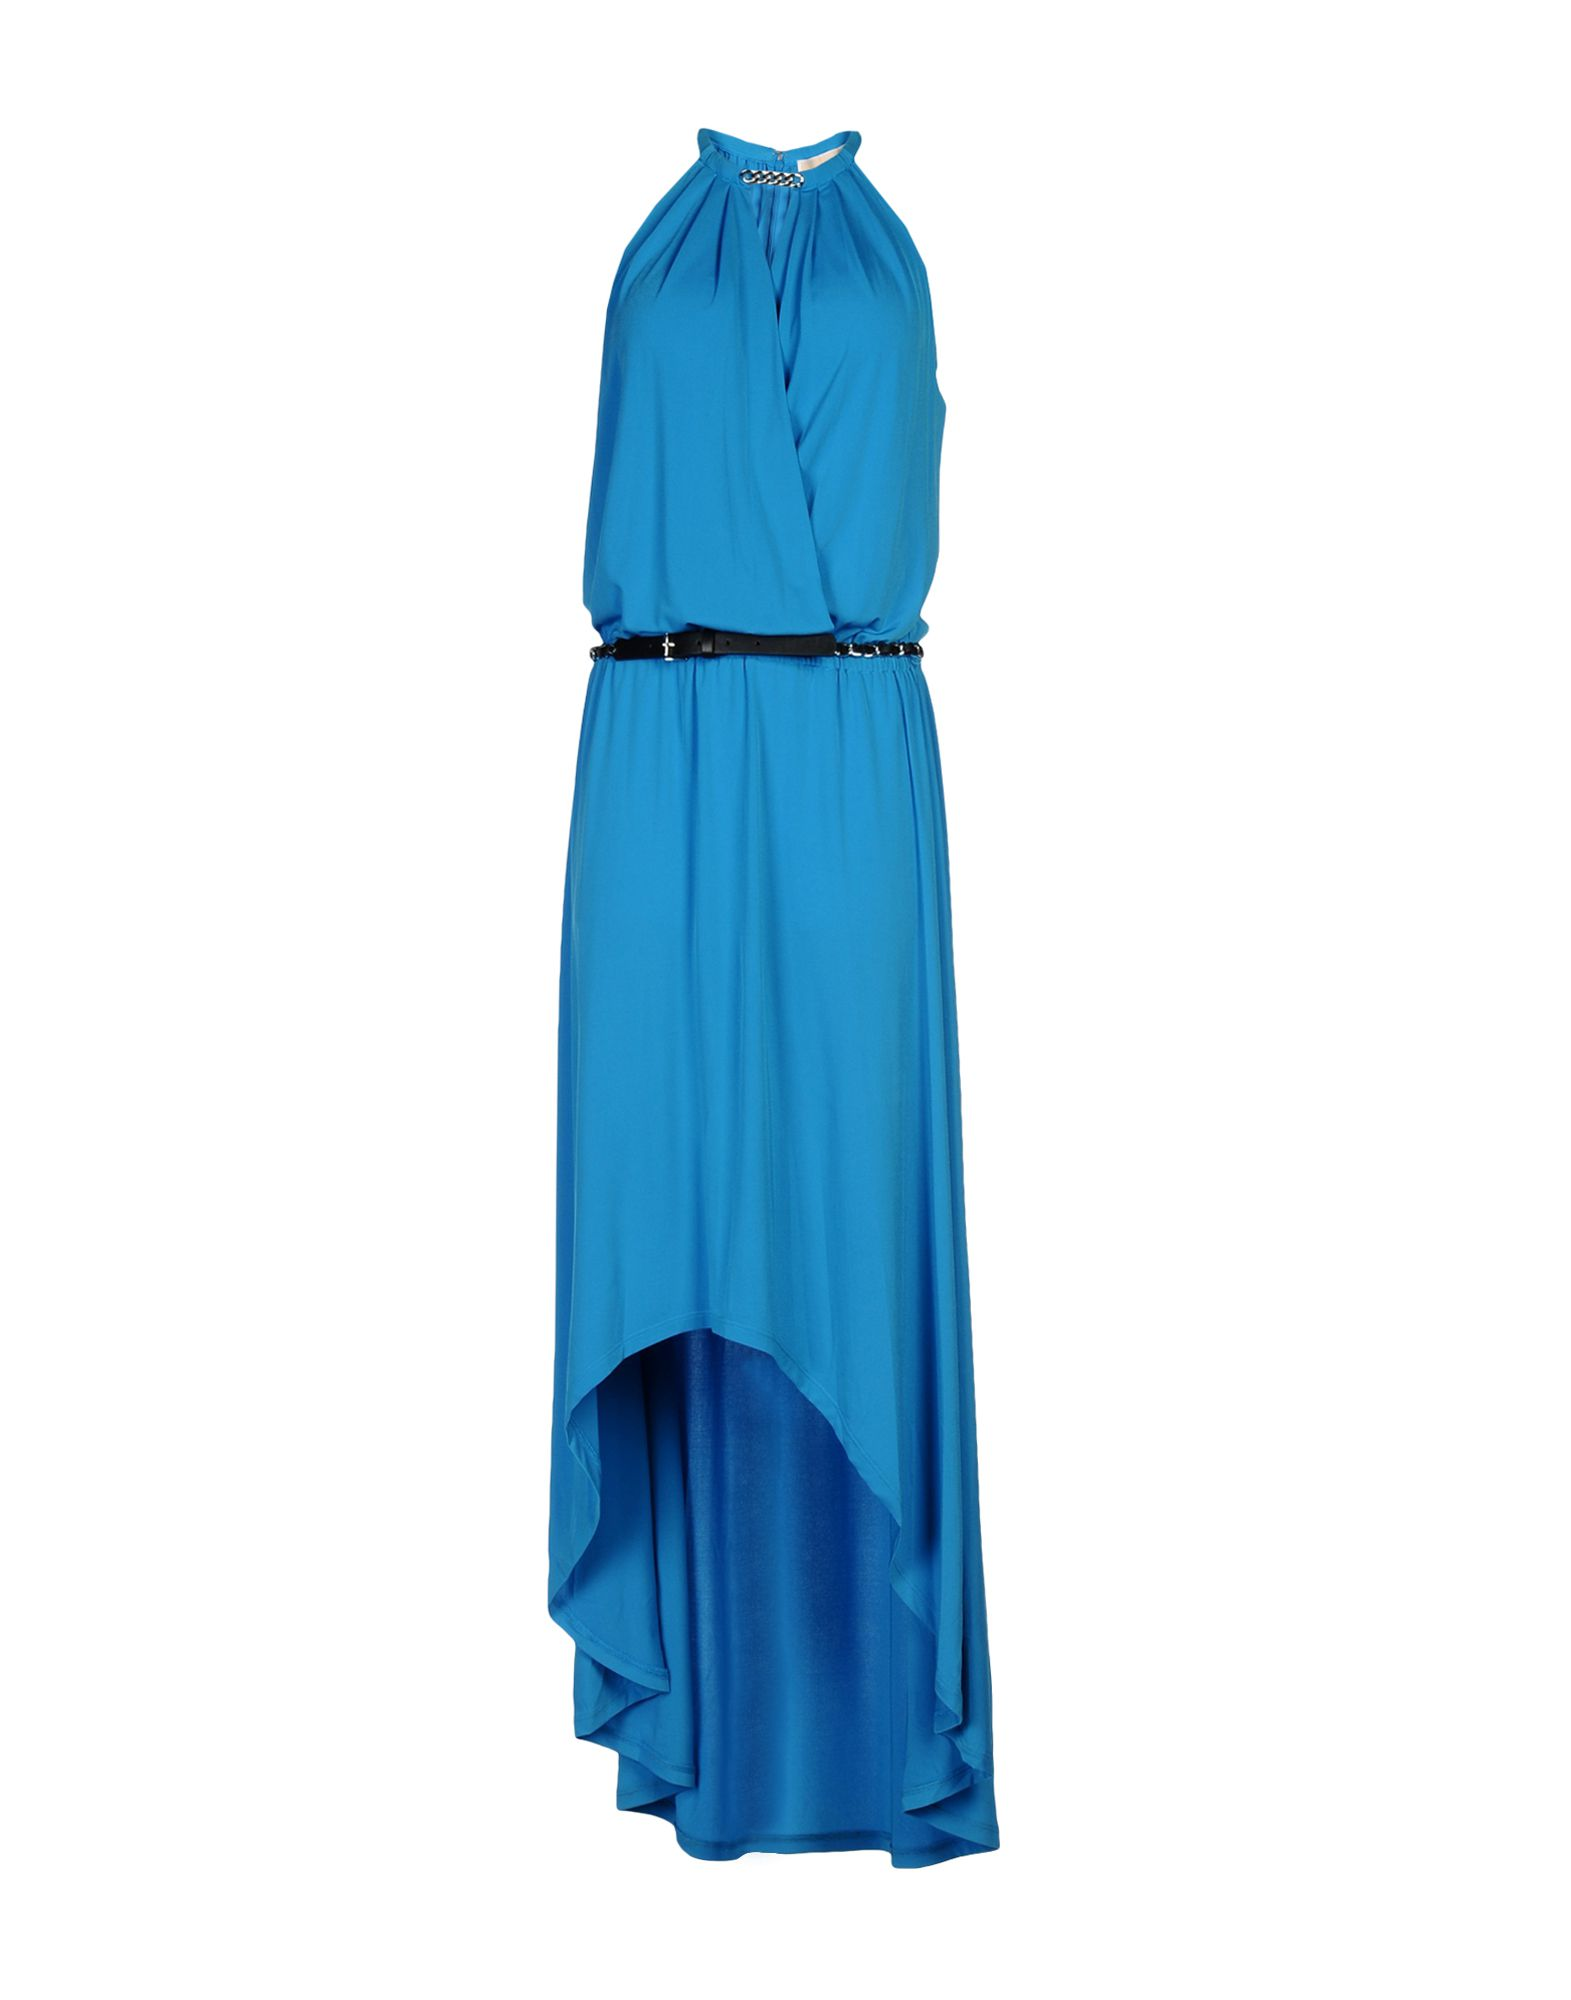 michael kors female michael kors long dresses